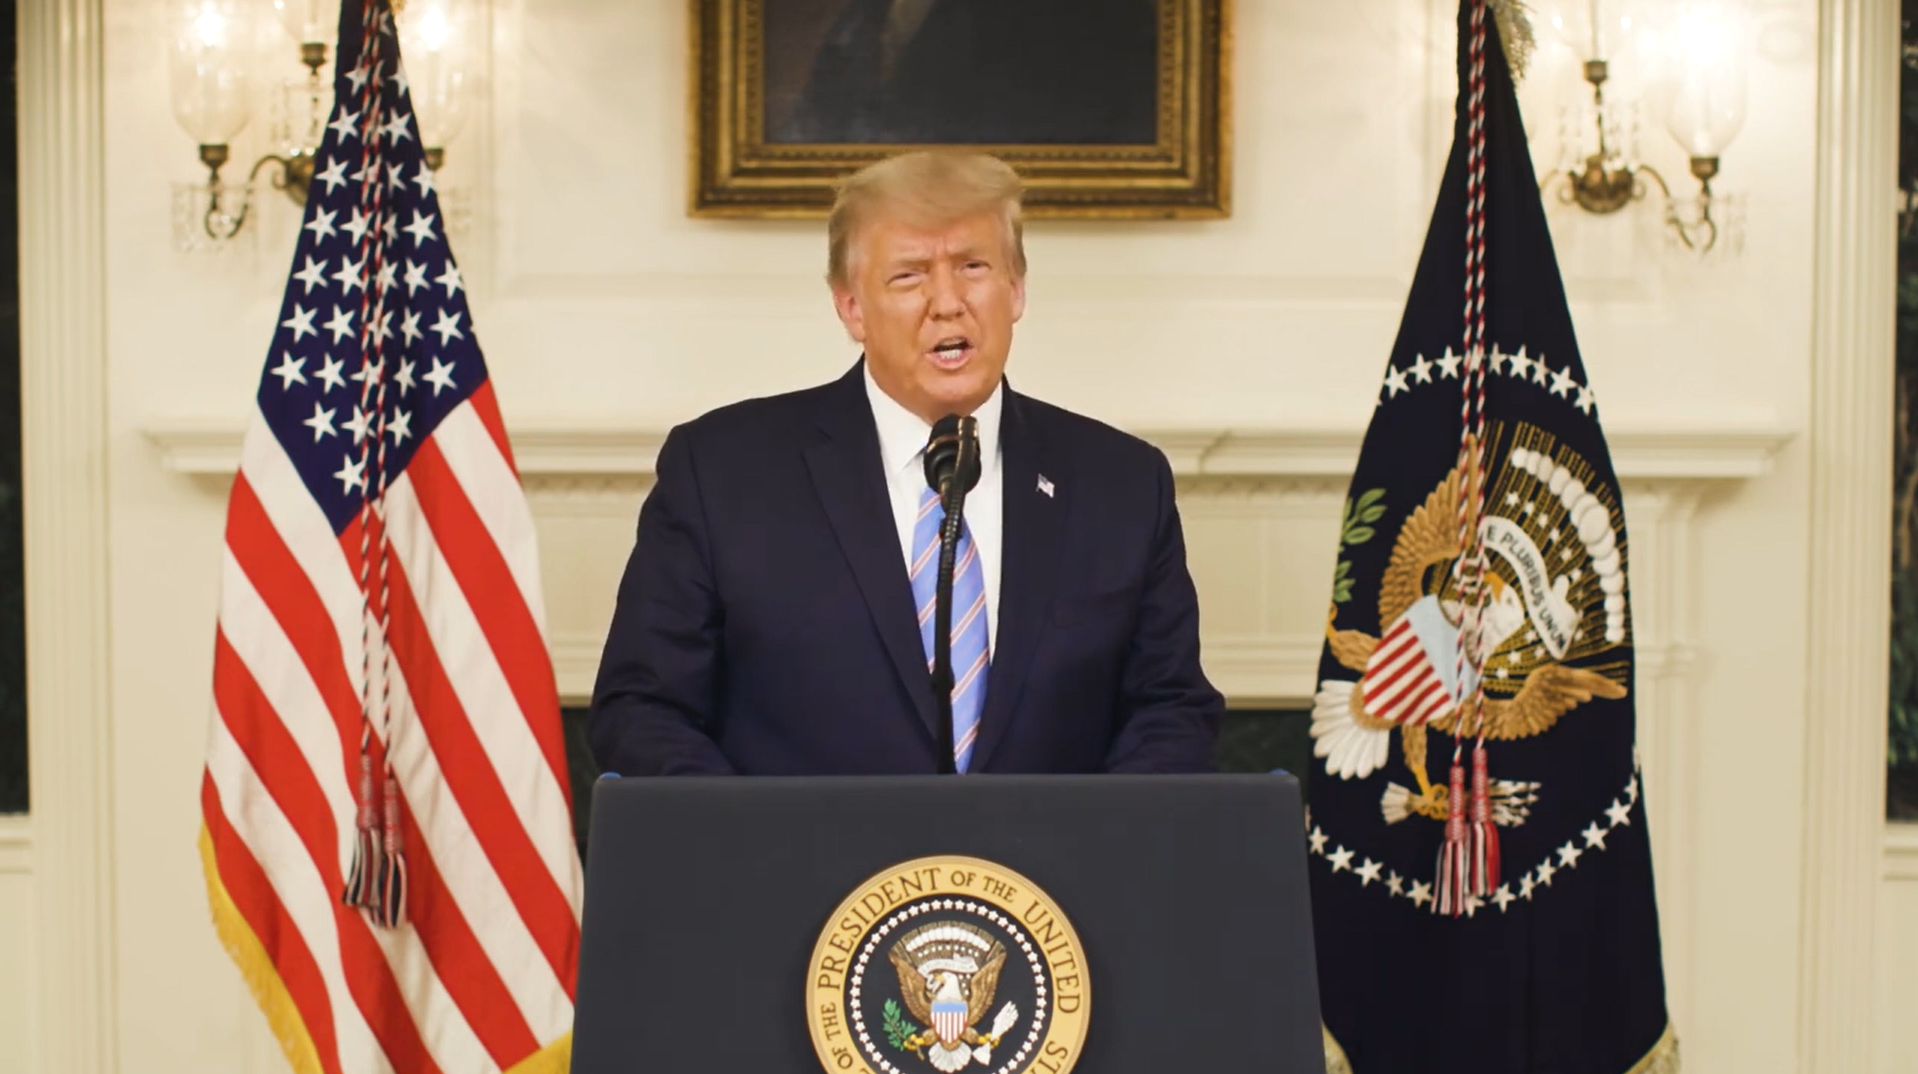 Concession by President Donald Trump